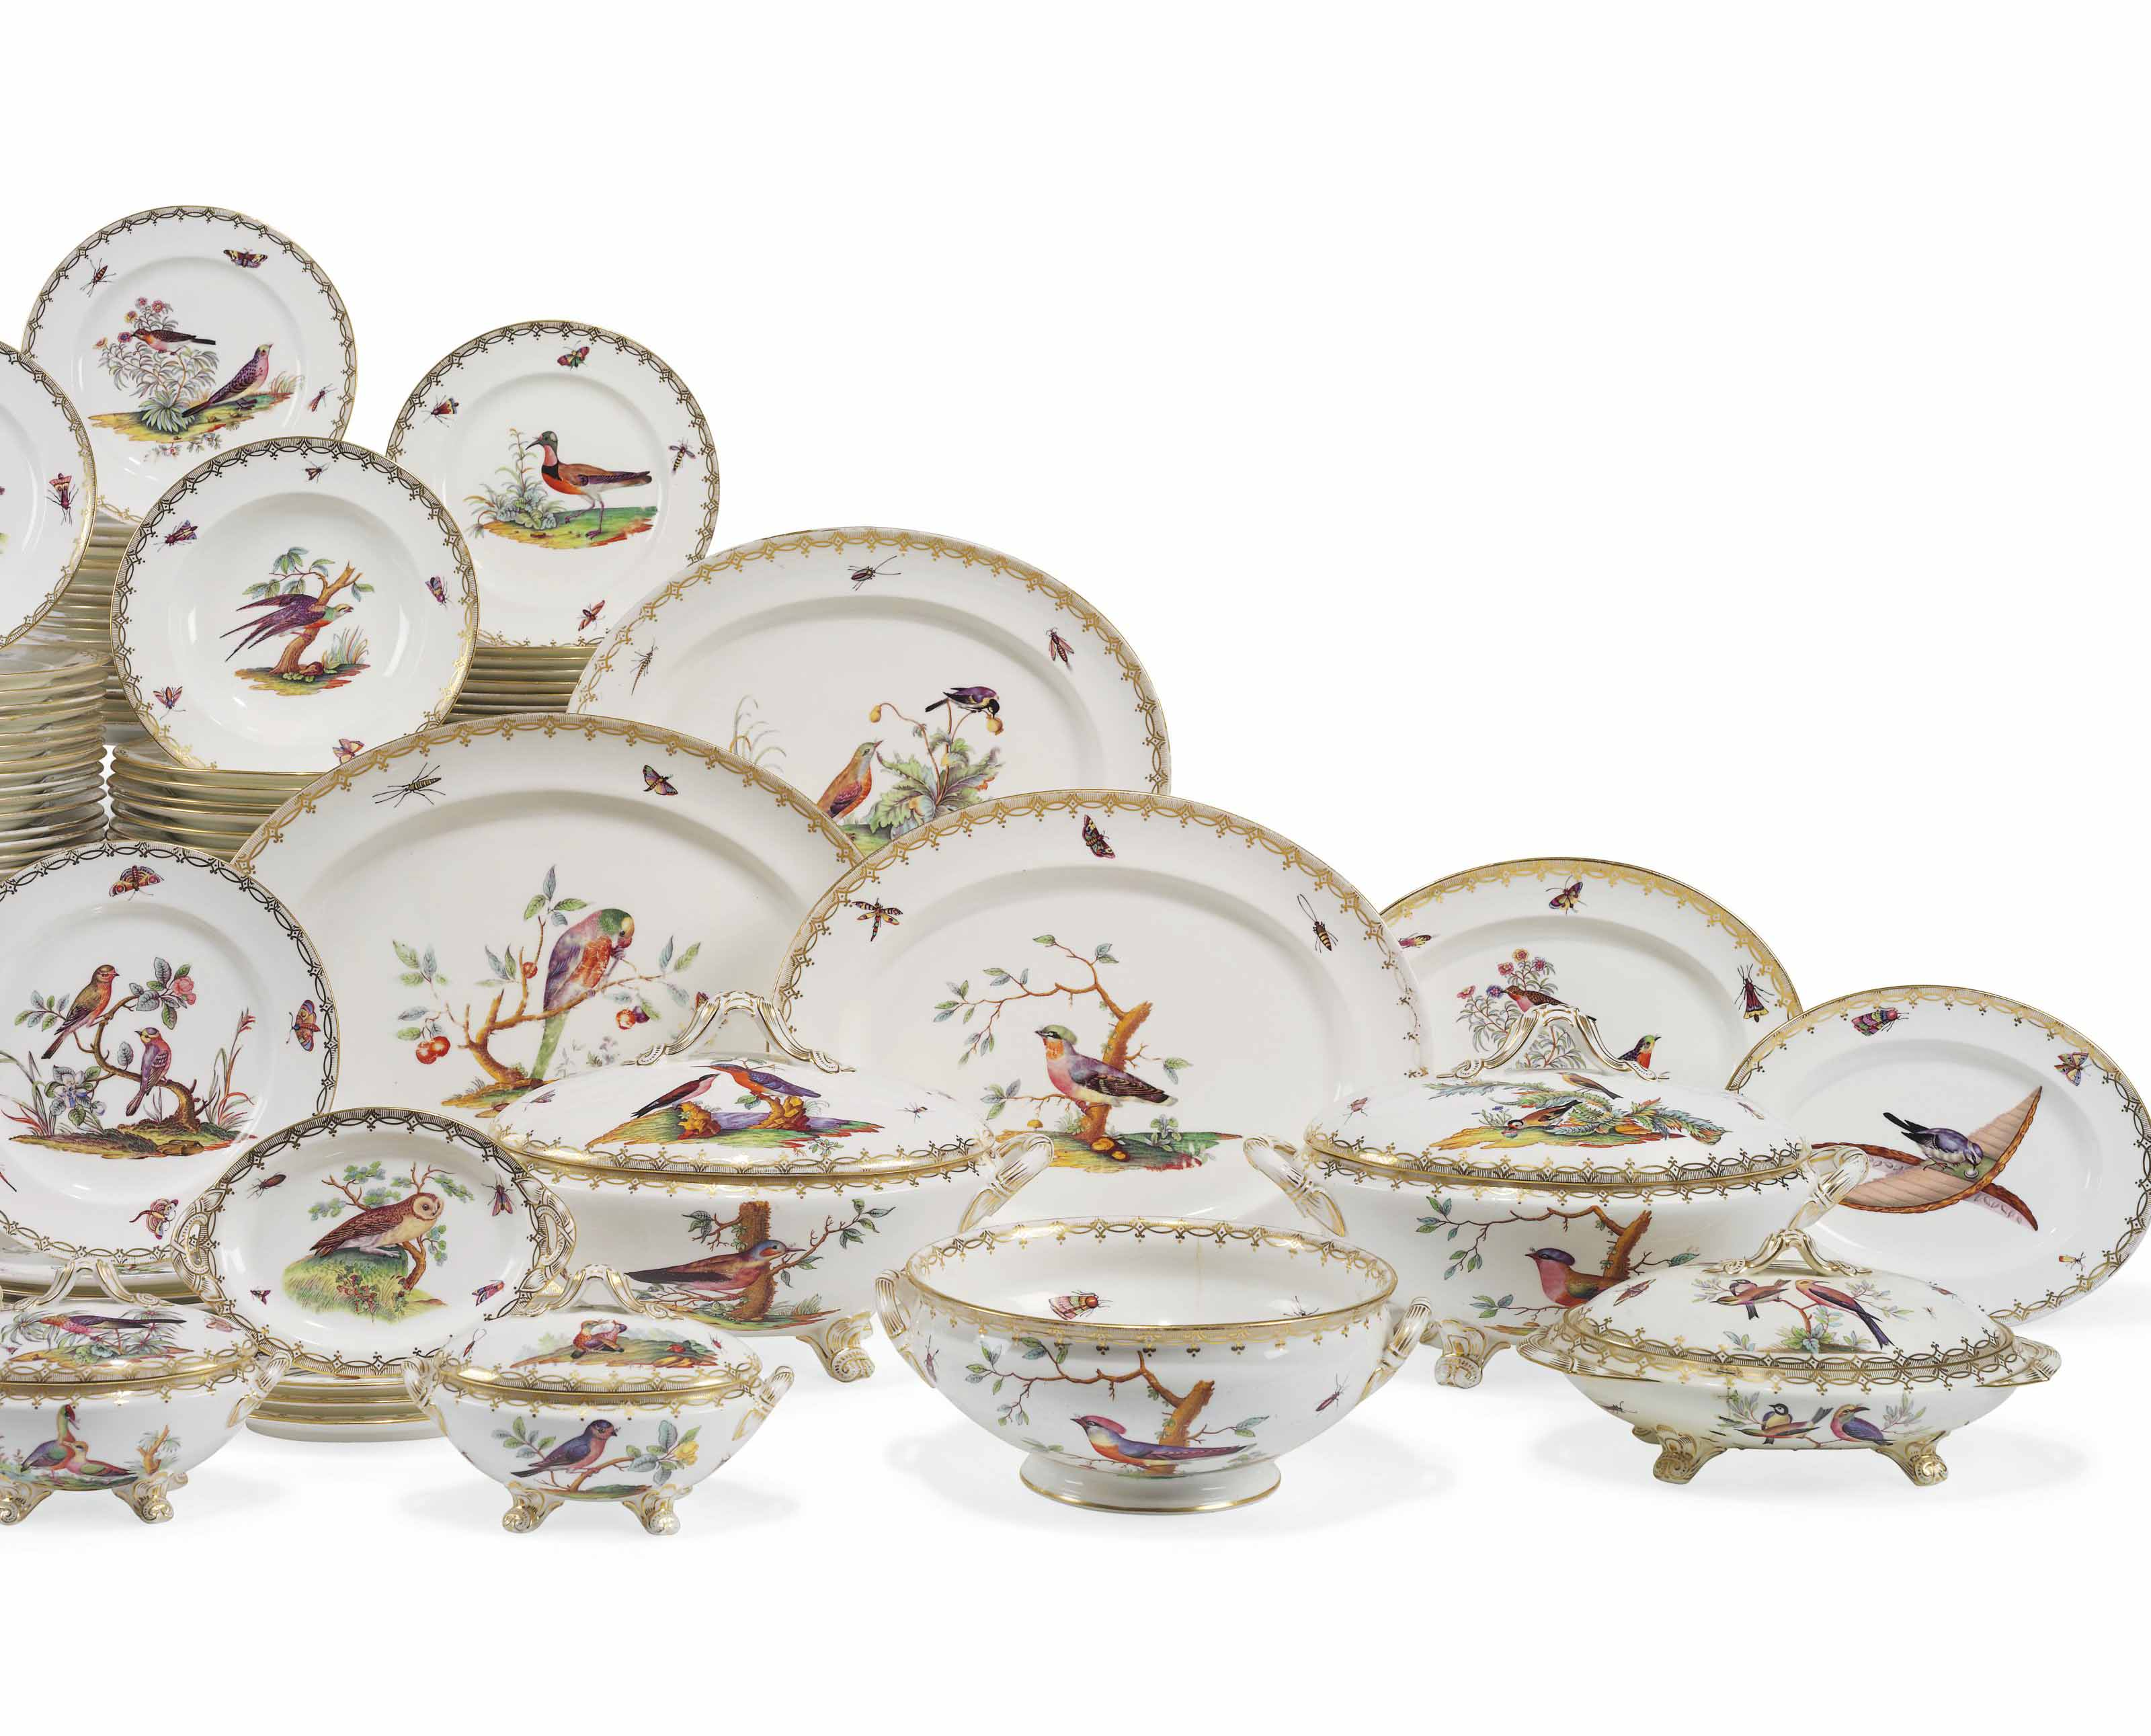 A COALPORT ORNITHOLOGICAL PART DINNER-SERVICE